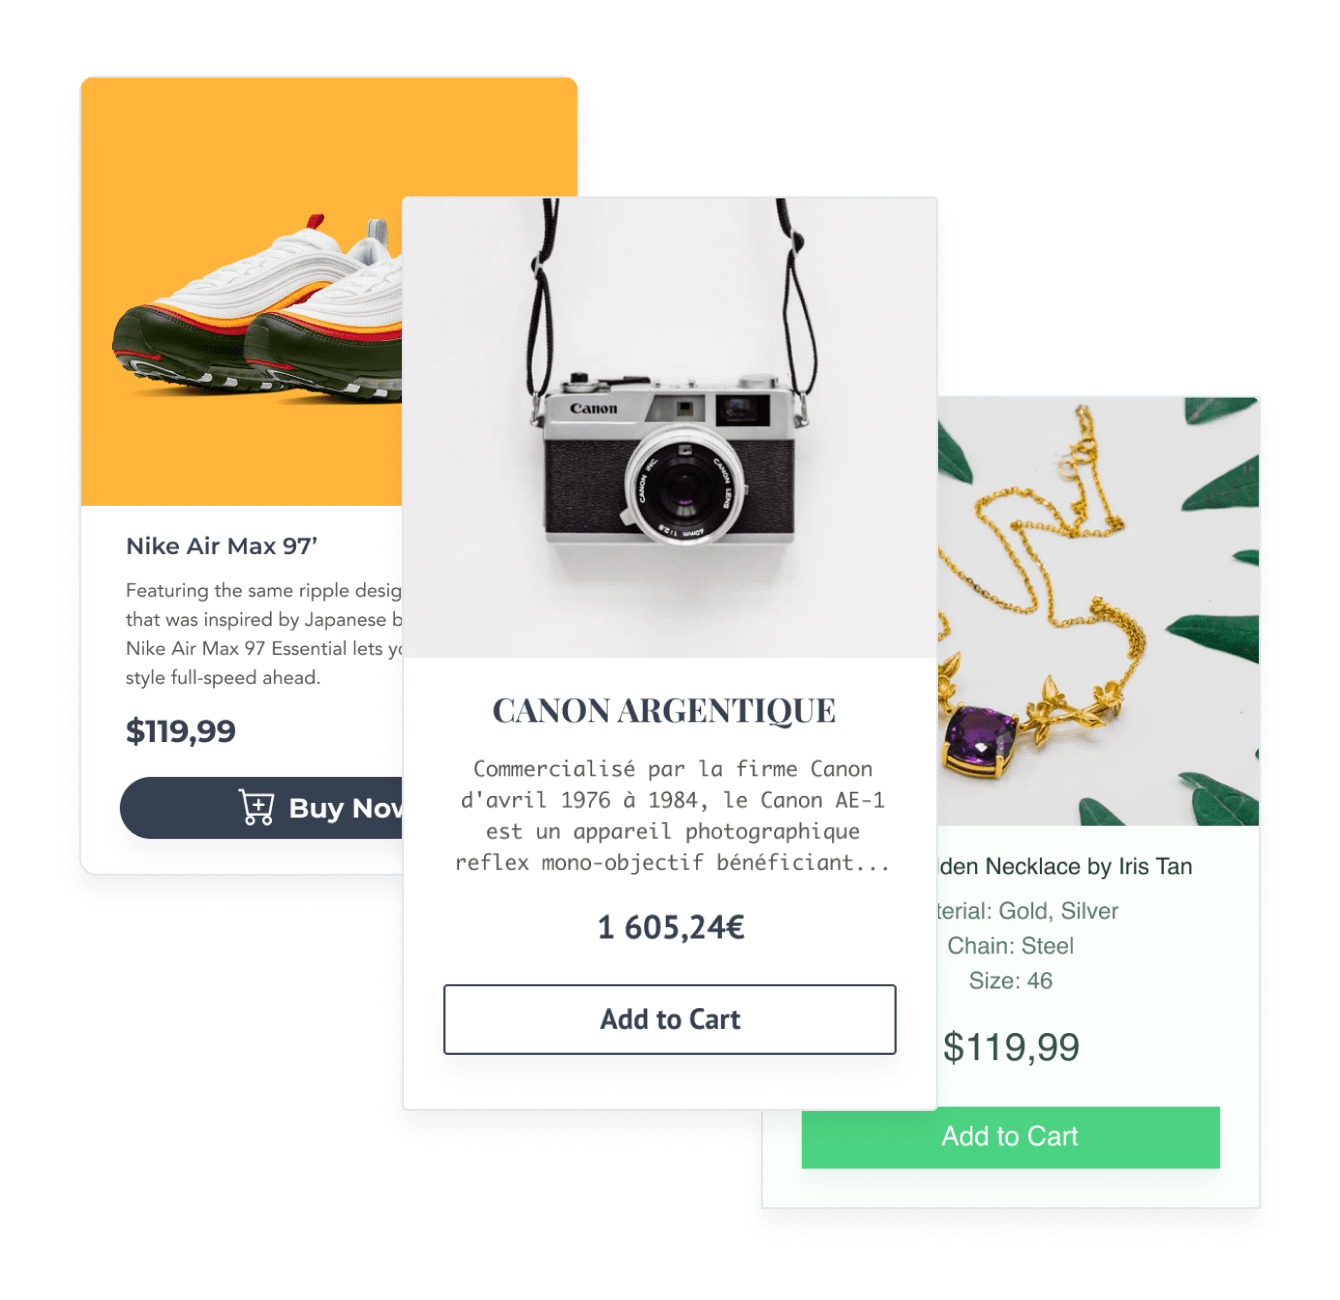 Product images with product information and an add to cart button created with POWR eCommerce.